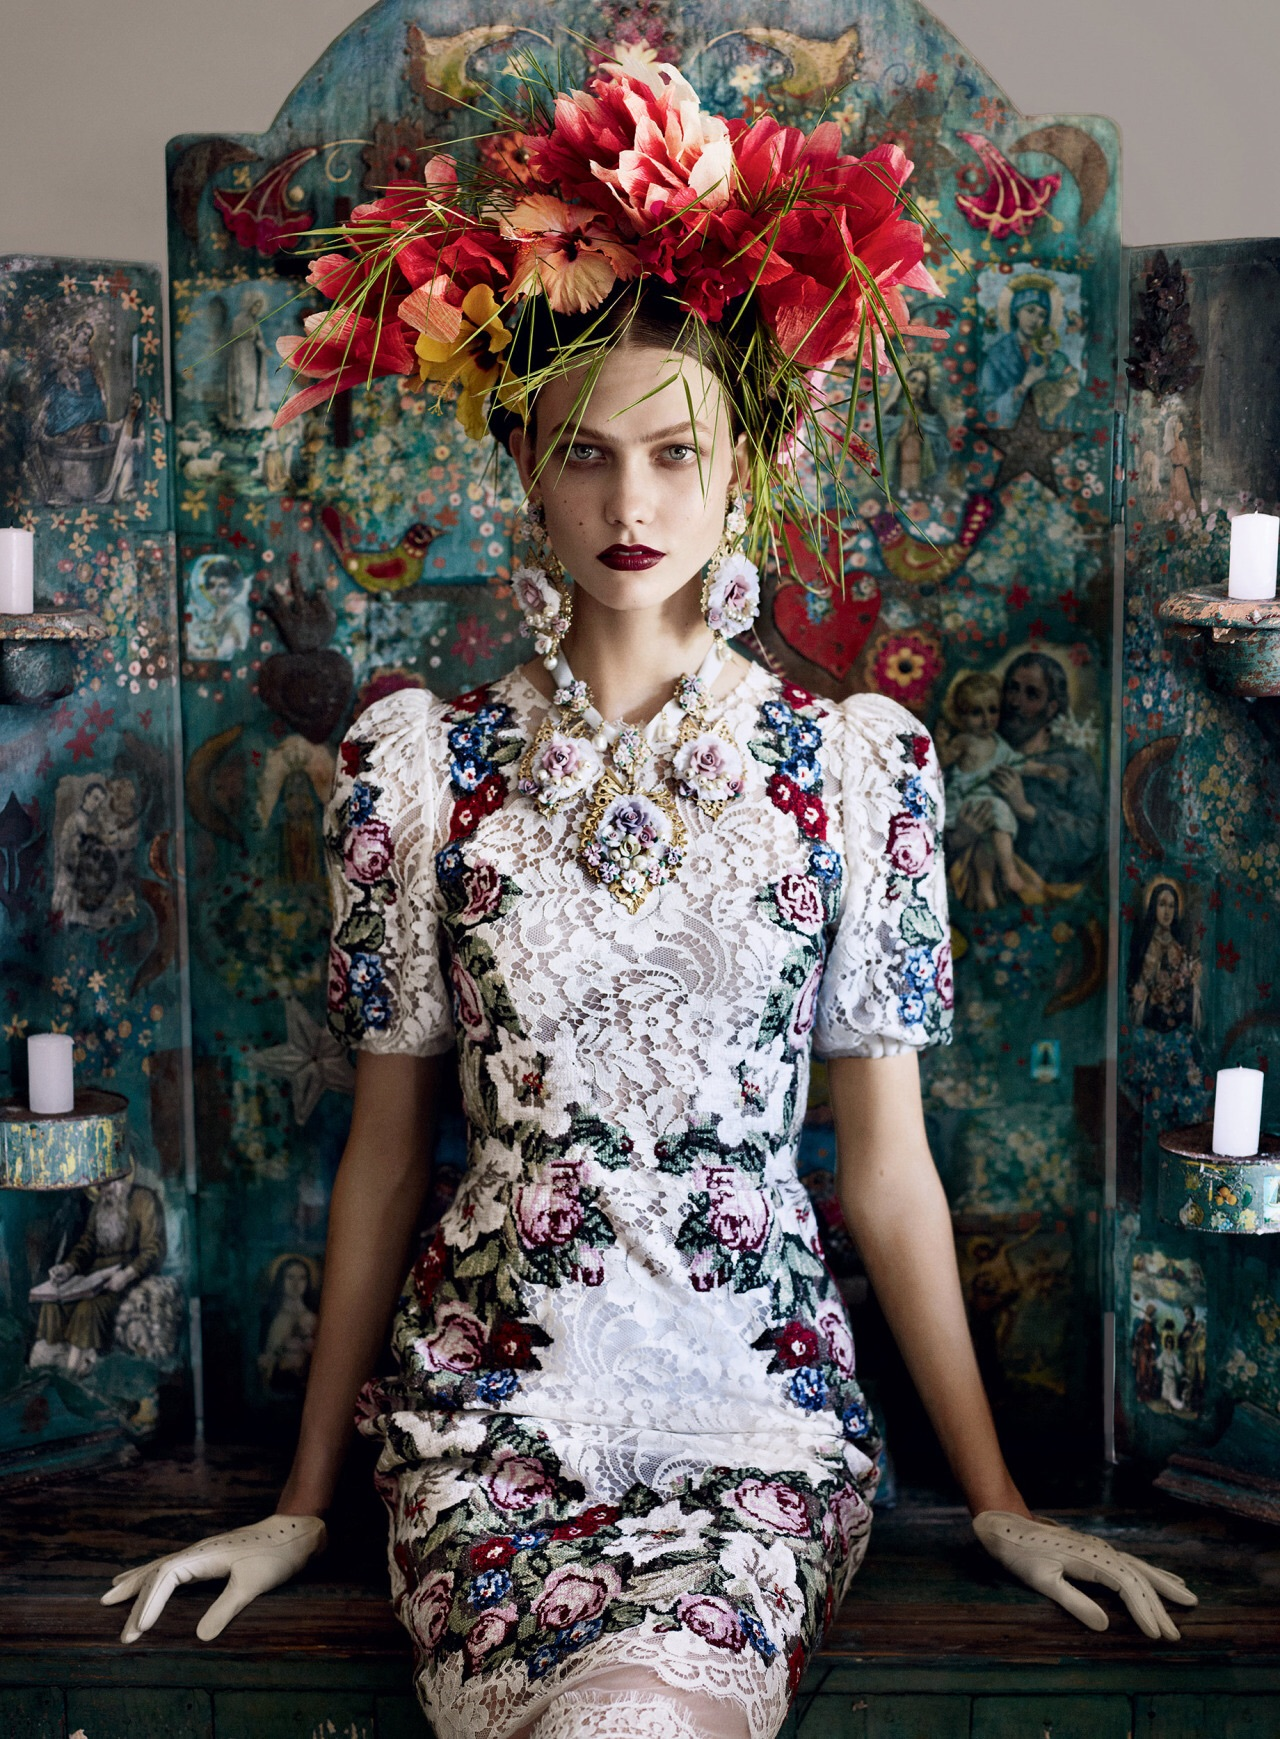 """Vogue's newlyreleased editorial features a a modern figure of striking resemblance tothe renowned Mexican painter,Frida Kahlo. Vogue's """"Frida""""poses in from of an antique style painted wood candelabra screen, poised perfectlyin a lacefloral dress, donned in an exaggerated version of the artist'ssignature floralheaddress, accessorisedby oversized drop earrings and a necklace, each a bouquet of roses backed with lace and garnished with pearls.//""""Frida""""de Vogueposeàpartird'unécrandecandélabresboispeintdestyleantique,prêtparfaitementàunerobeendentelleflorale,enfiléedansuneversionexagéréedecoiffefloraledesignaturede l'artiste,accessoiriséedegrandesboucles d'oreillesetuncollier,chacununbouquetderosessoutenuavecdentelleetgarnideperles."""